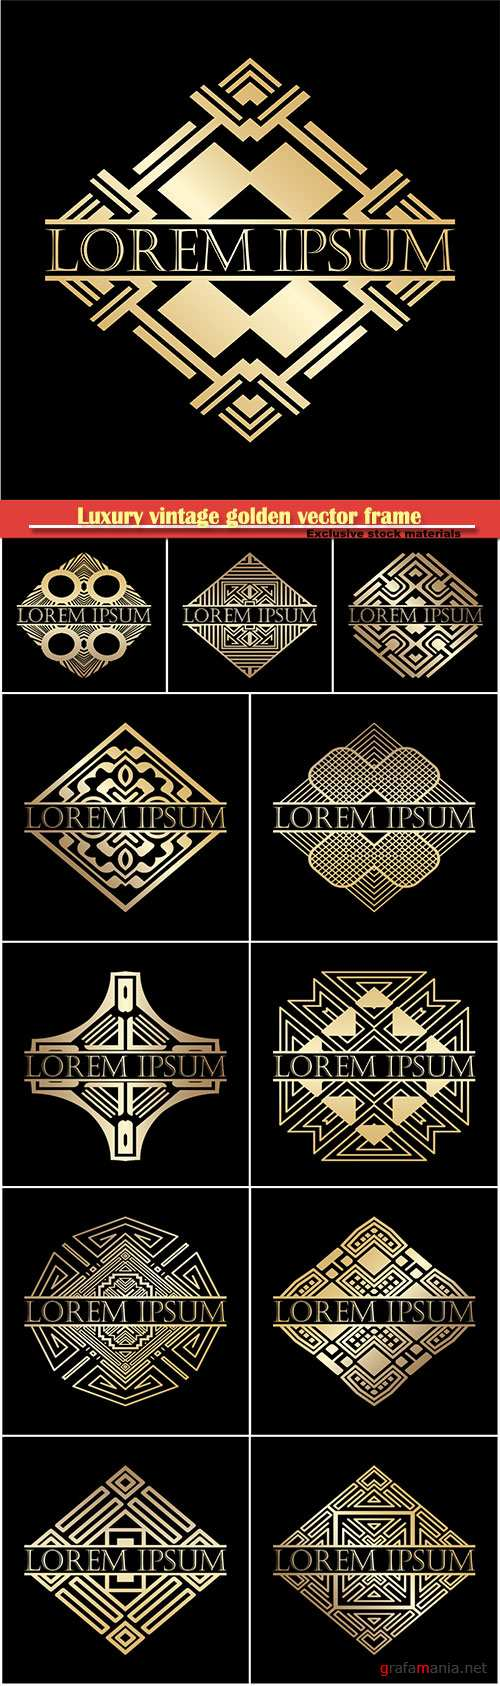 Luxury vintage golden vector frame, vector label for logo